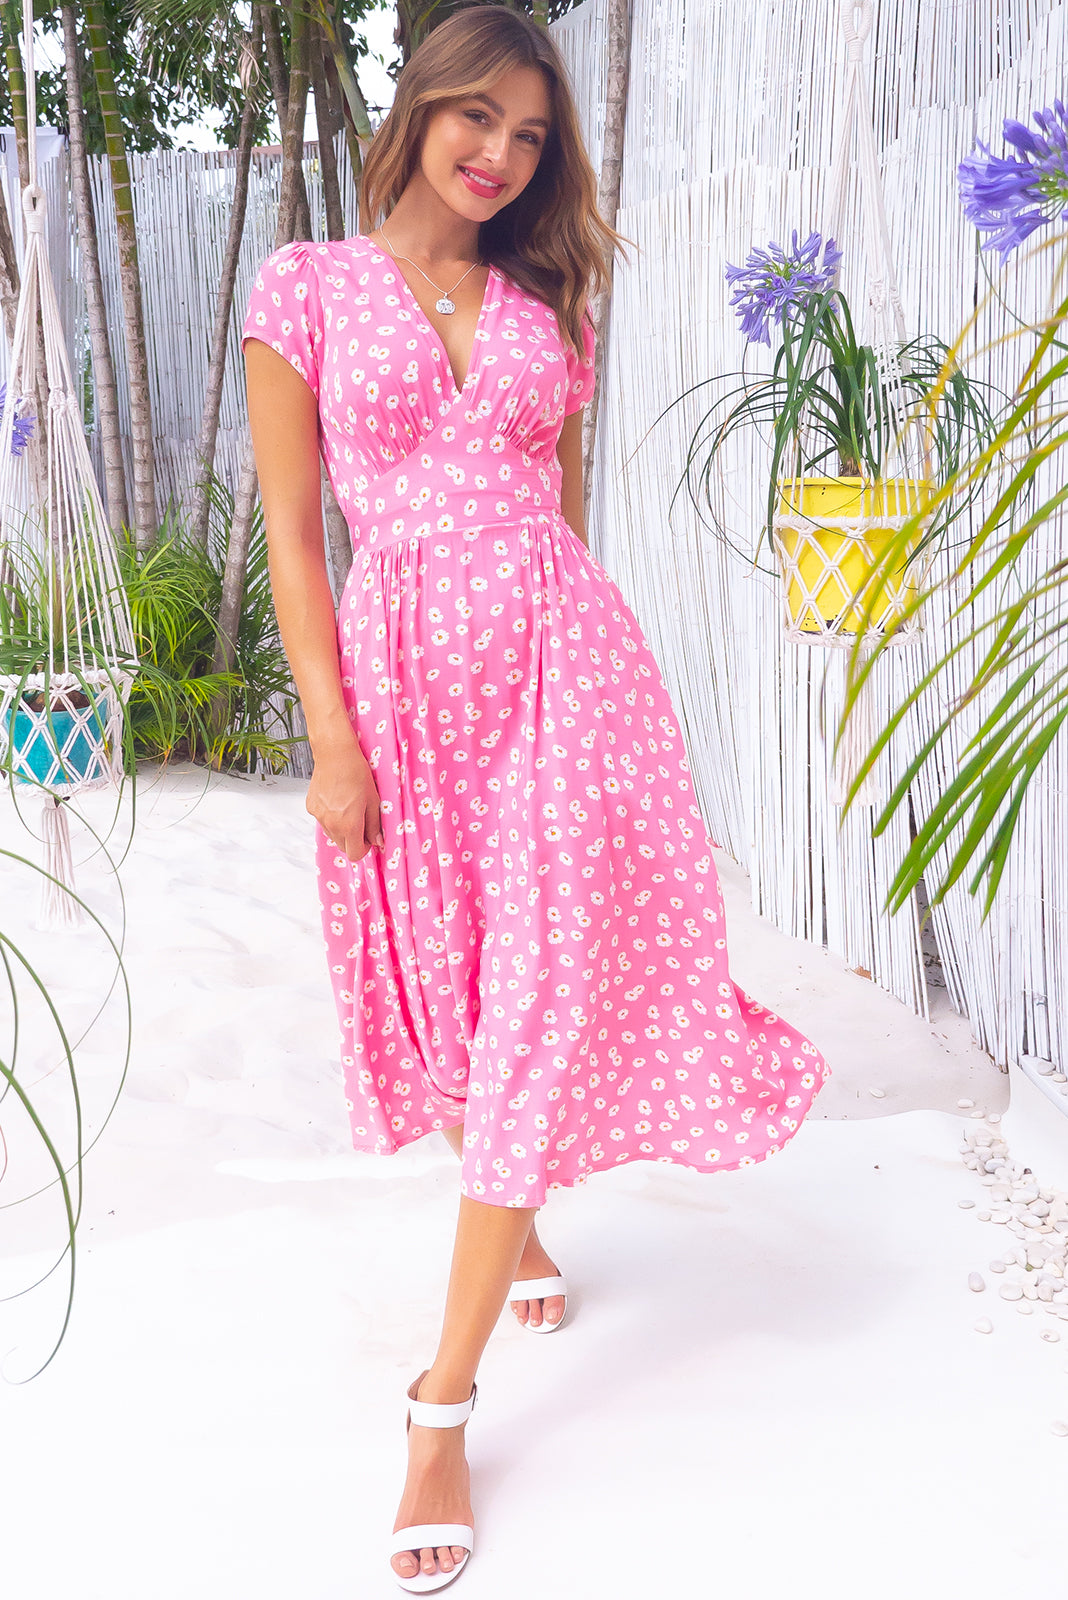 The Lizzie Pink Spring Dress features fitted basque waist with gathered bust, waist features elastic shirring at back, petite side pockets and 100% rayon in bright, taffy pink base with sweet daisy print.